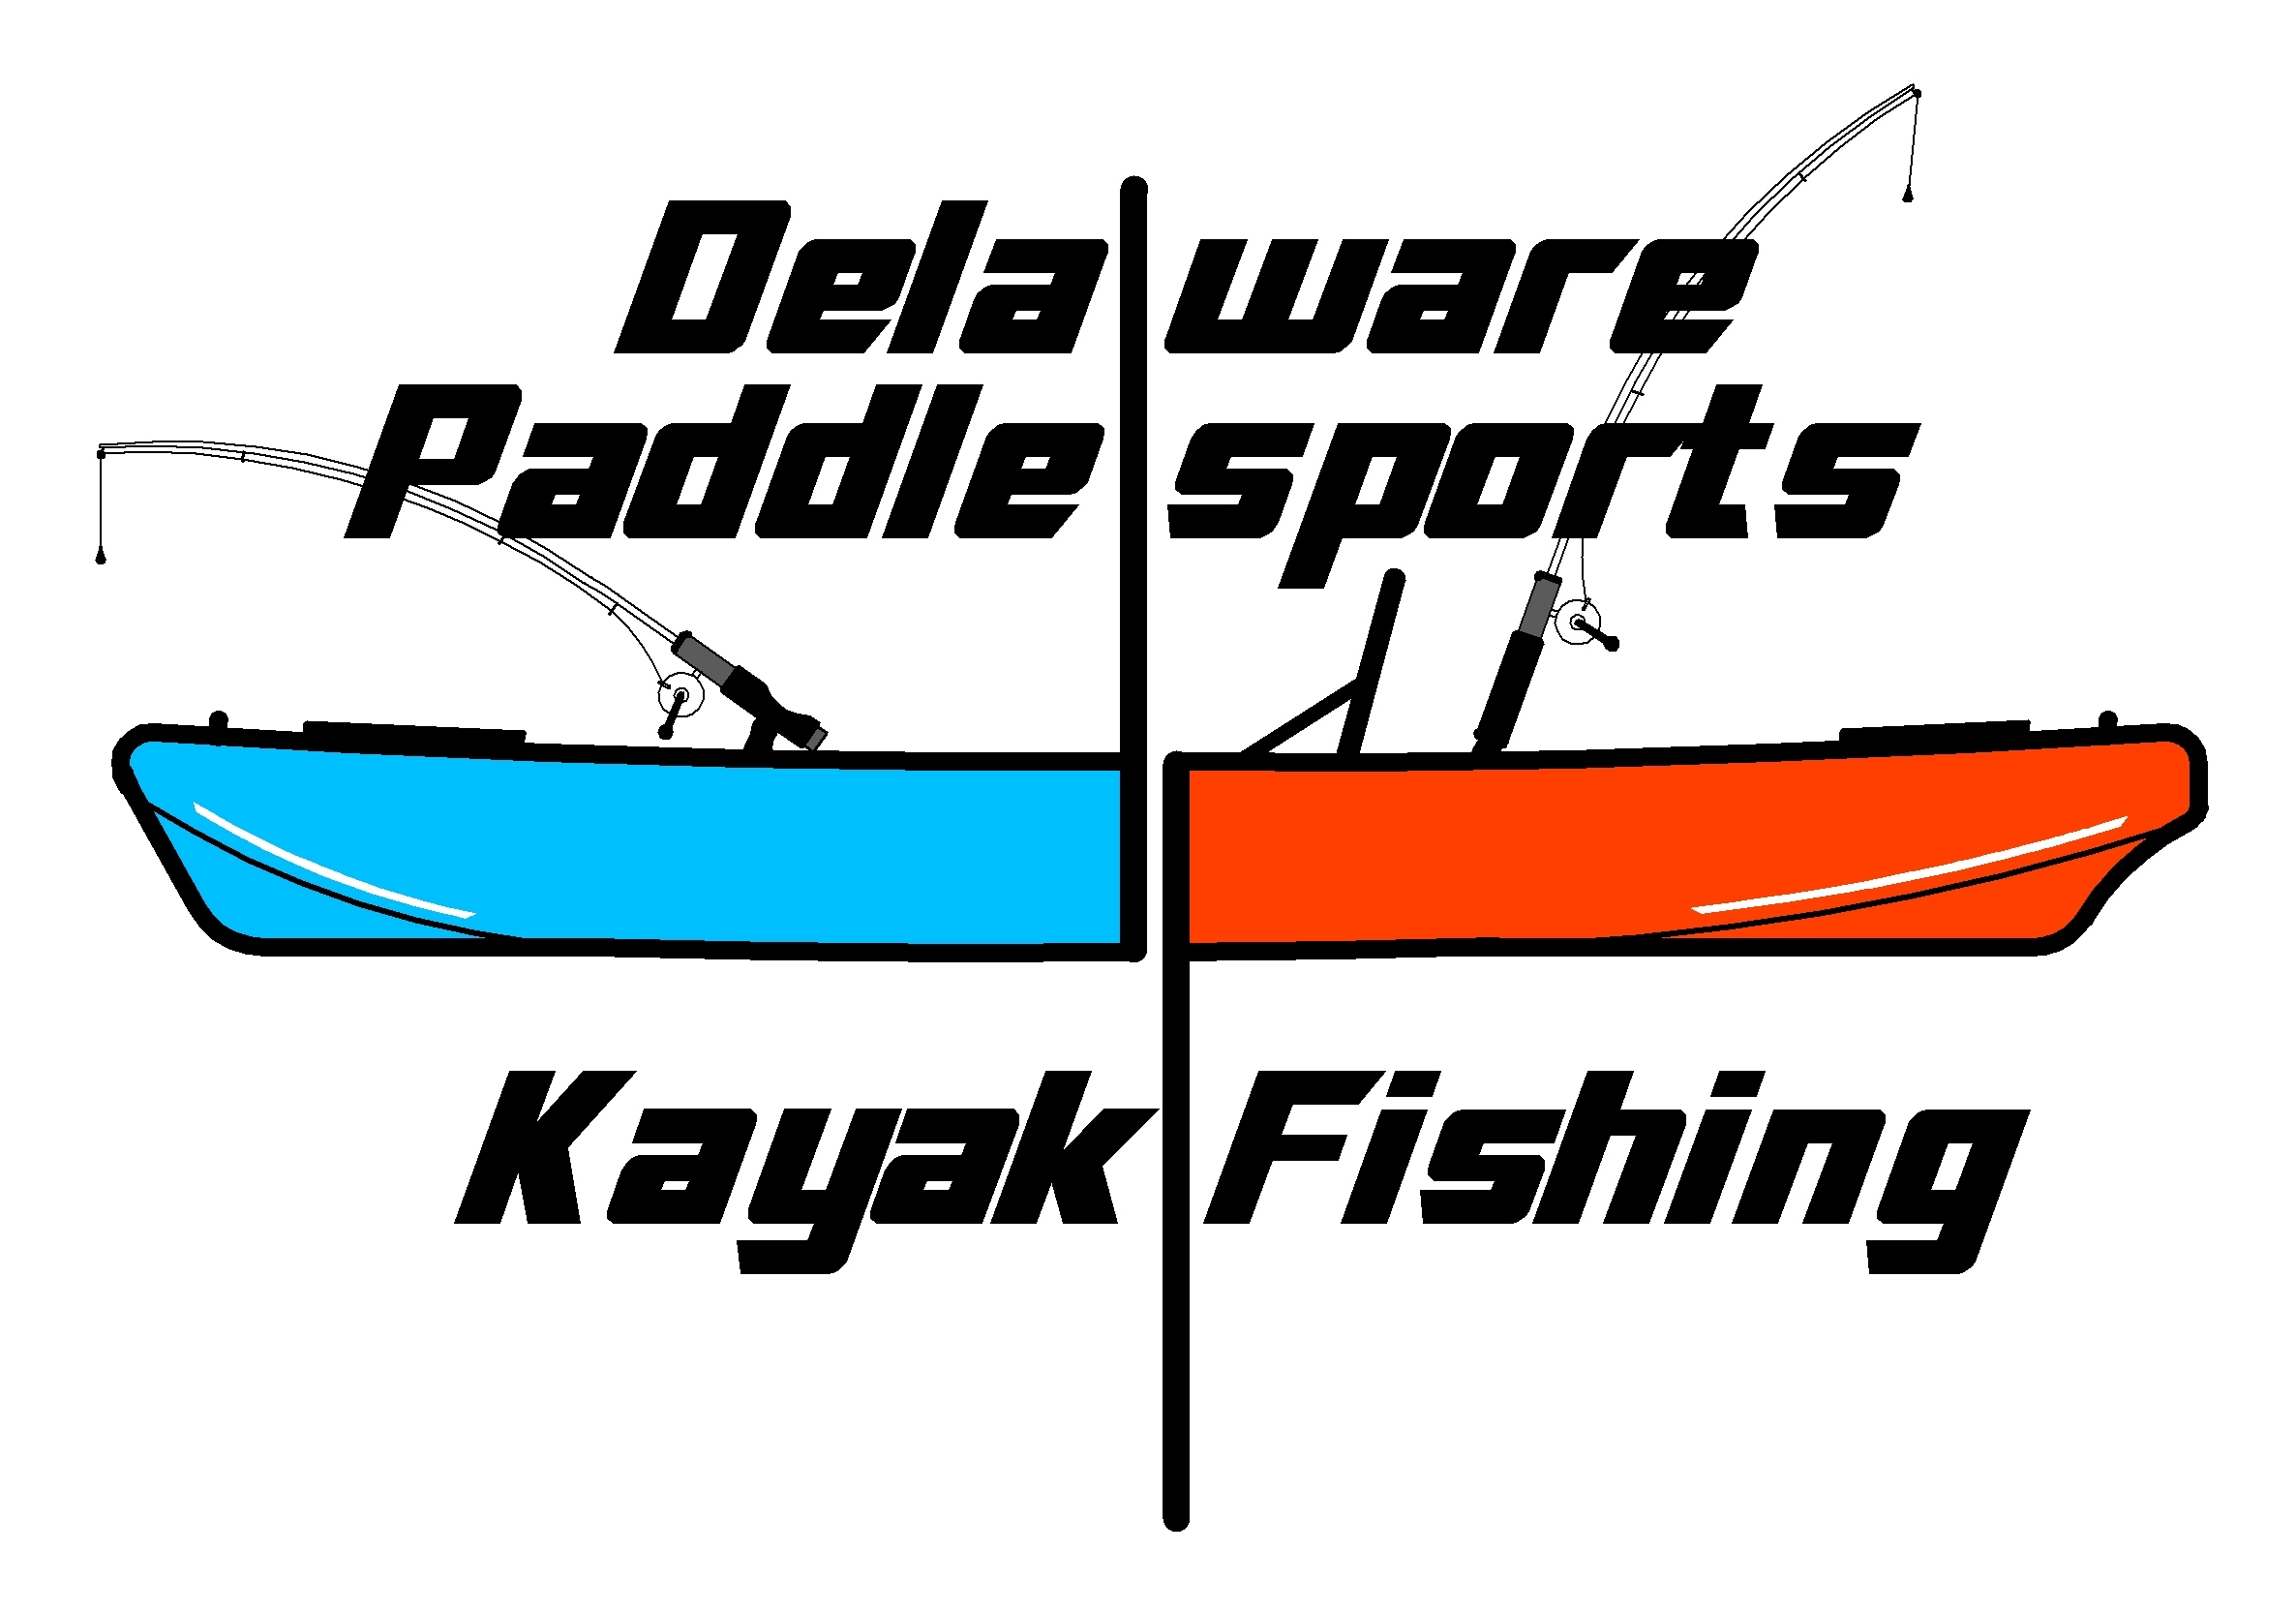 dps-kayak-fishing-logo.jpg